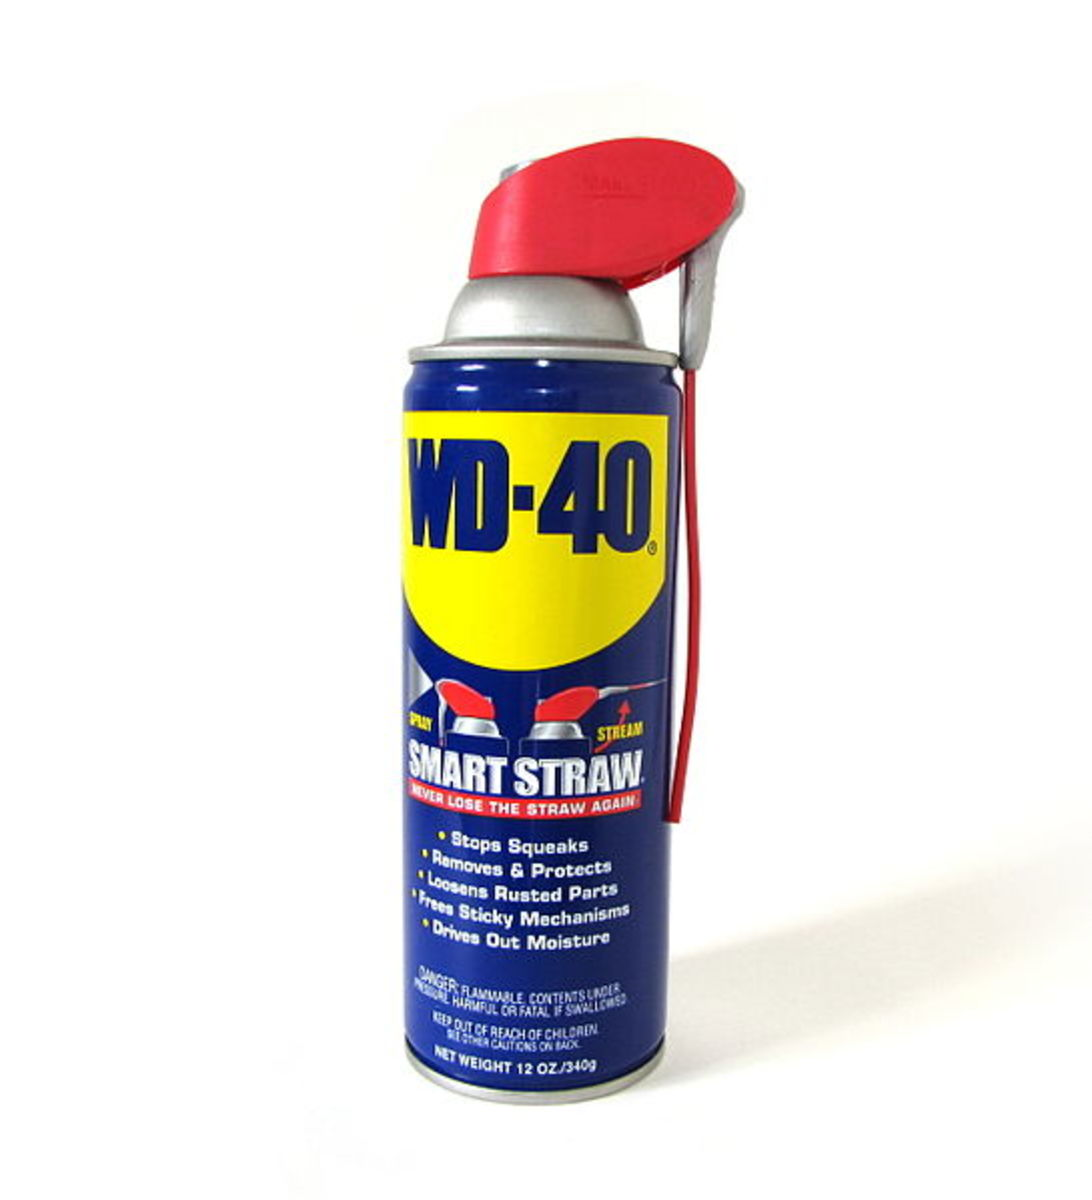 Did you know? 12 great uses for WD-40